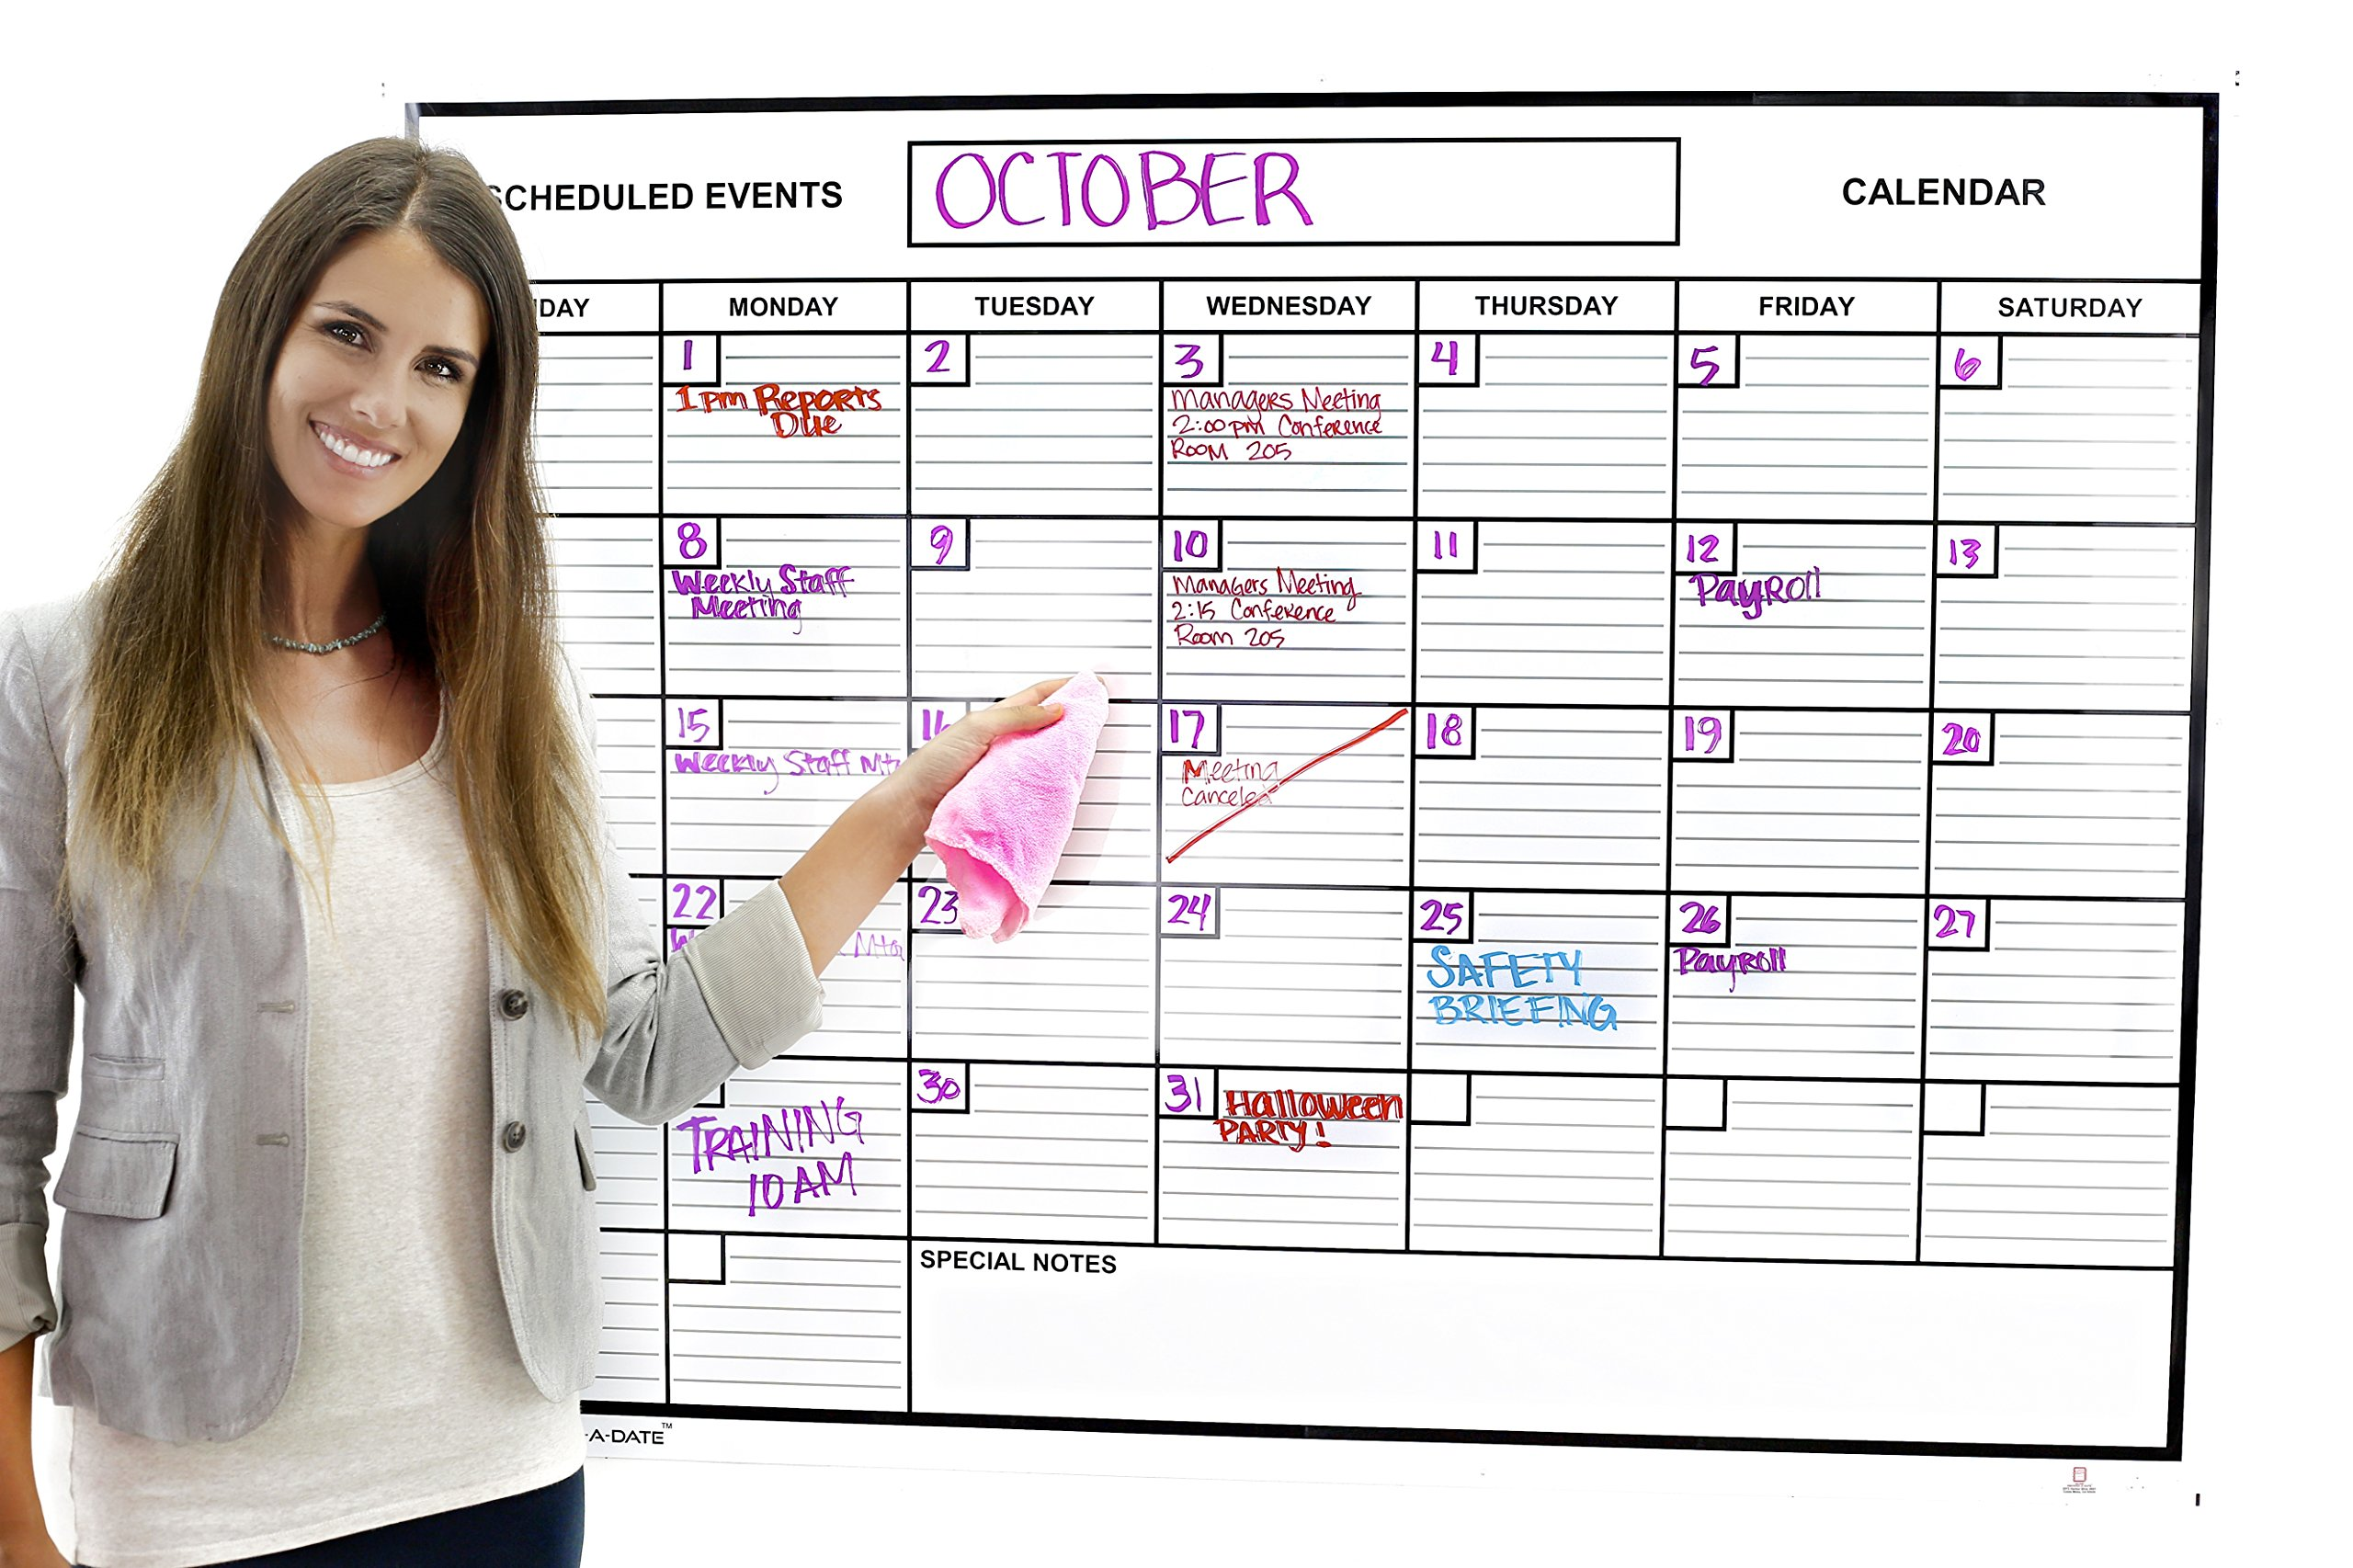 Whiteboard Dry Erase Monthly Calendar 2' x 3' Flexible Durable Sheet Material - Best for Goals Current Events By Acme Record A Date Offer Easy to Install Stick or Tack for Home School Business